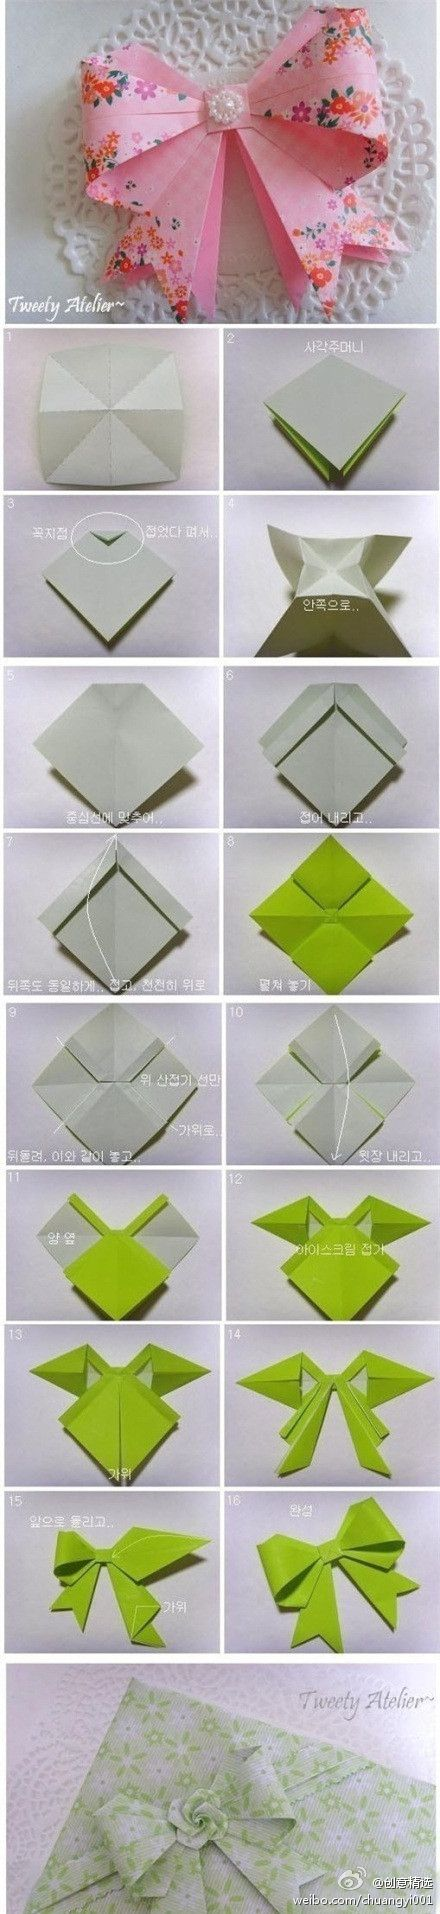 114 Best Images About Origami On Pinterest Animal Sculptures Advanced Fox Instructions Diagram Gif Gift Bow Diy